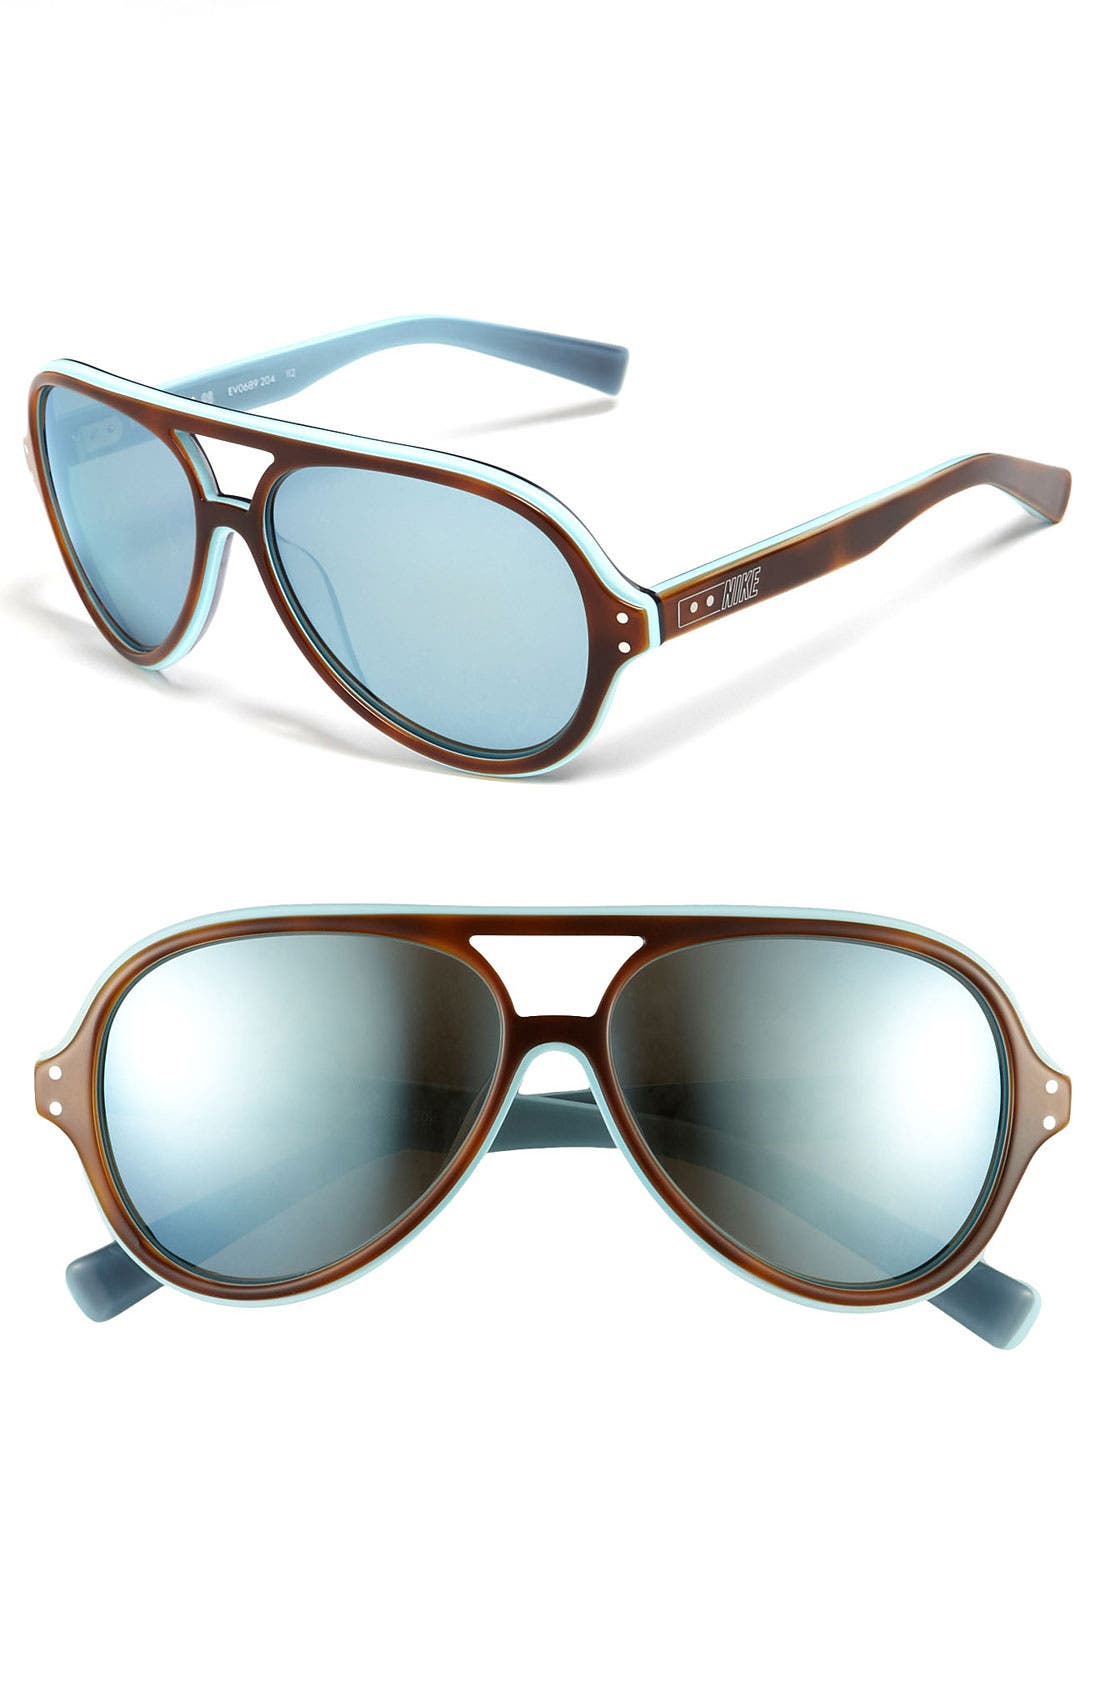 Alternate Image 1 Selected - Nike 59mm Aviator Sunglasses